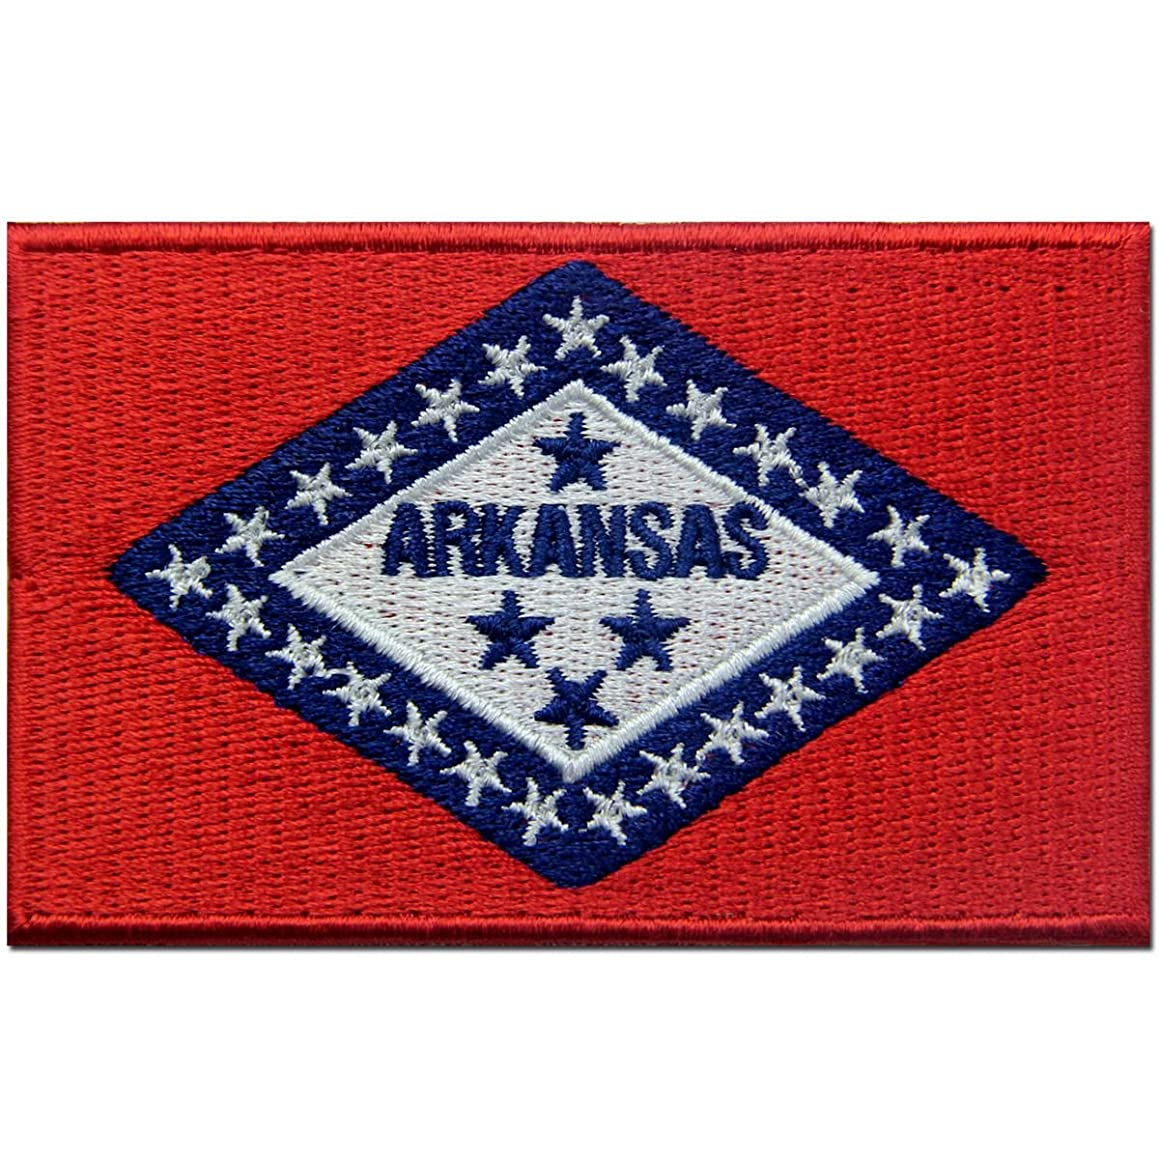 Arkansas State Flag Embroidered Emblem Iron On Sew On AR Patch